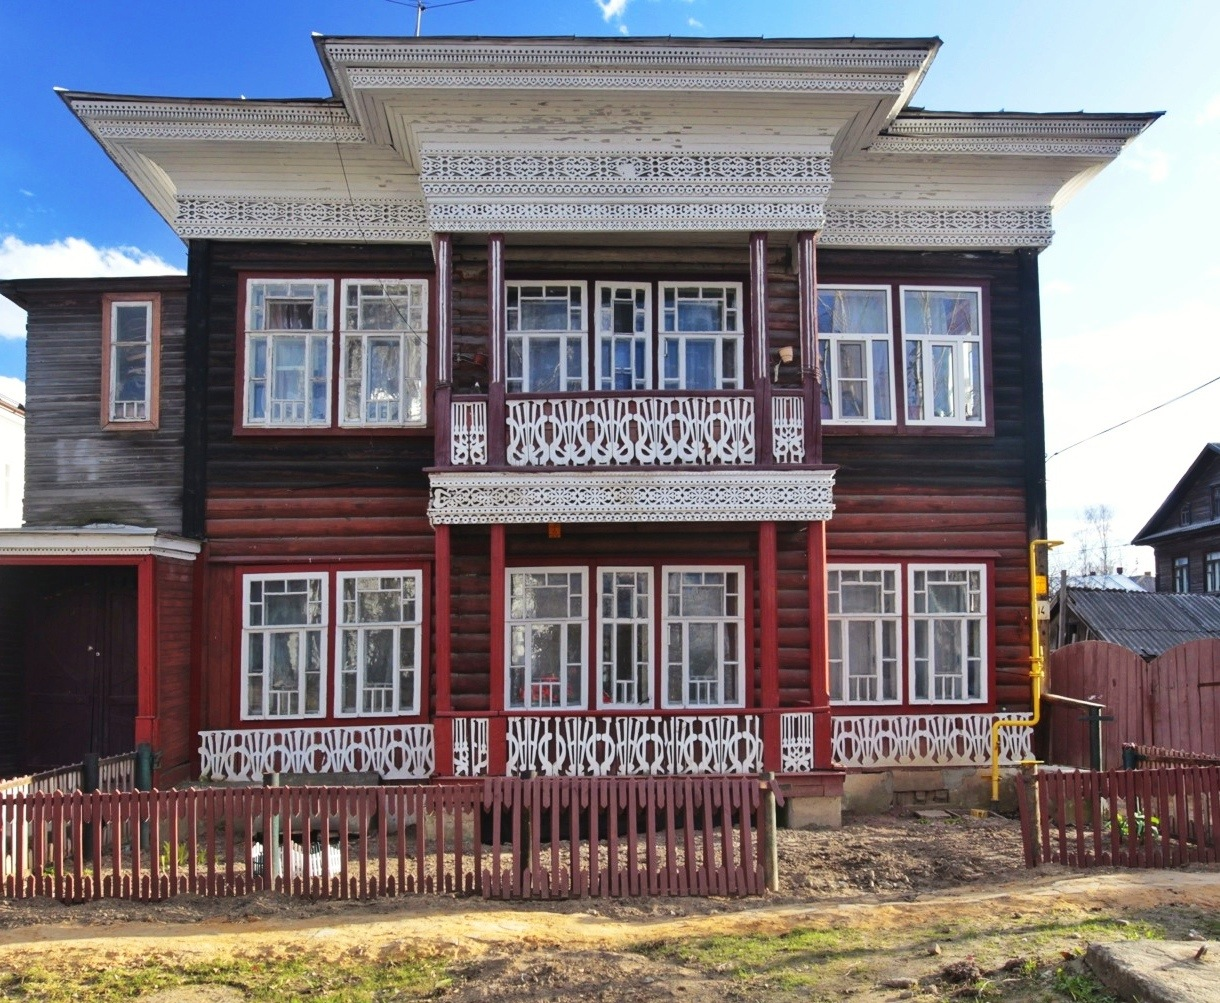 A carved wooden house in Vologda city